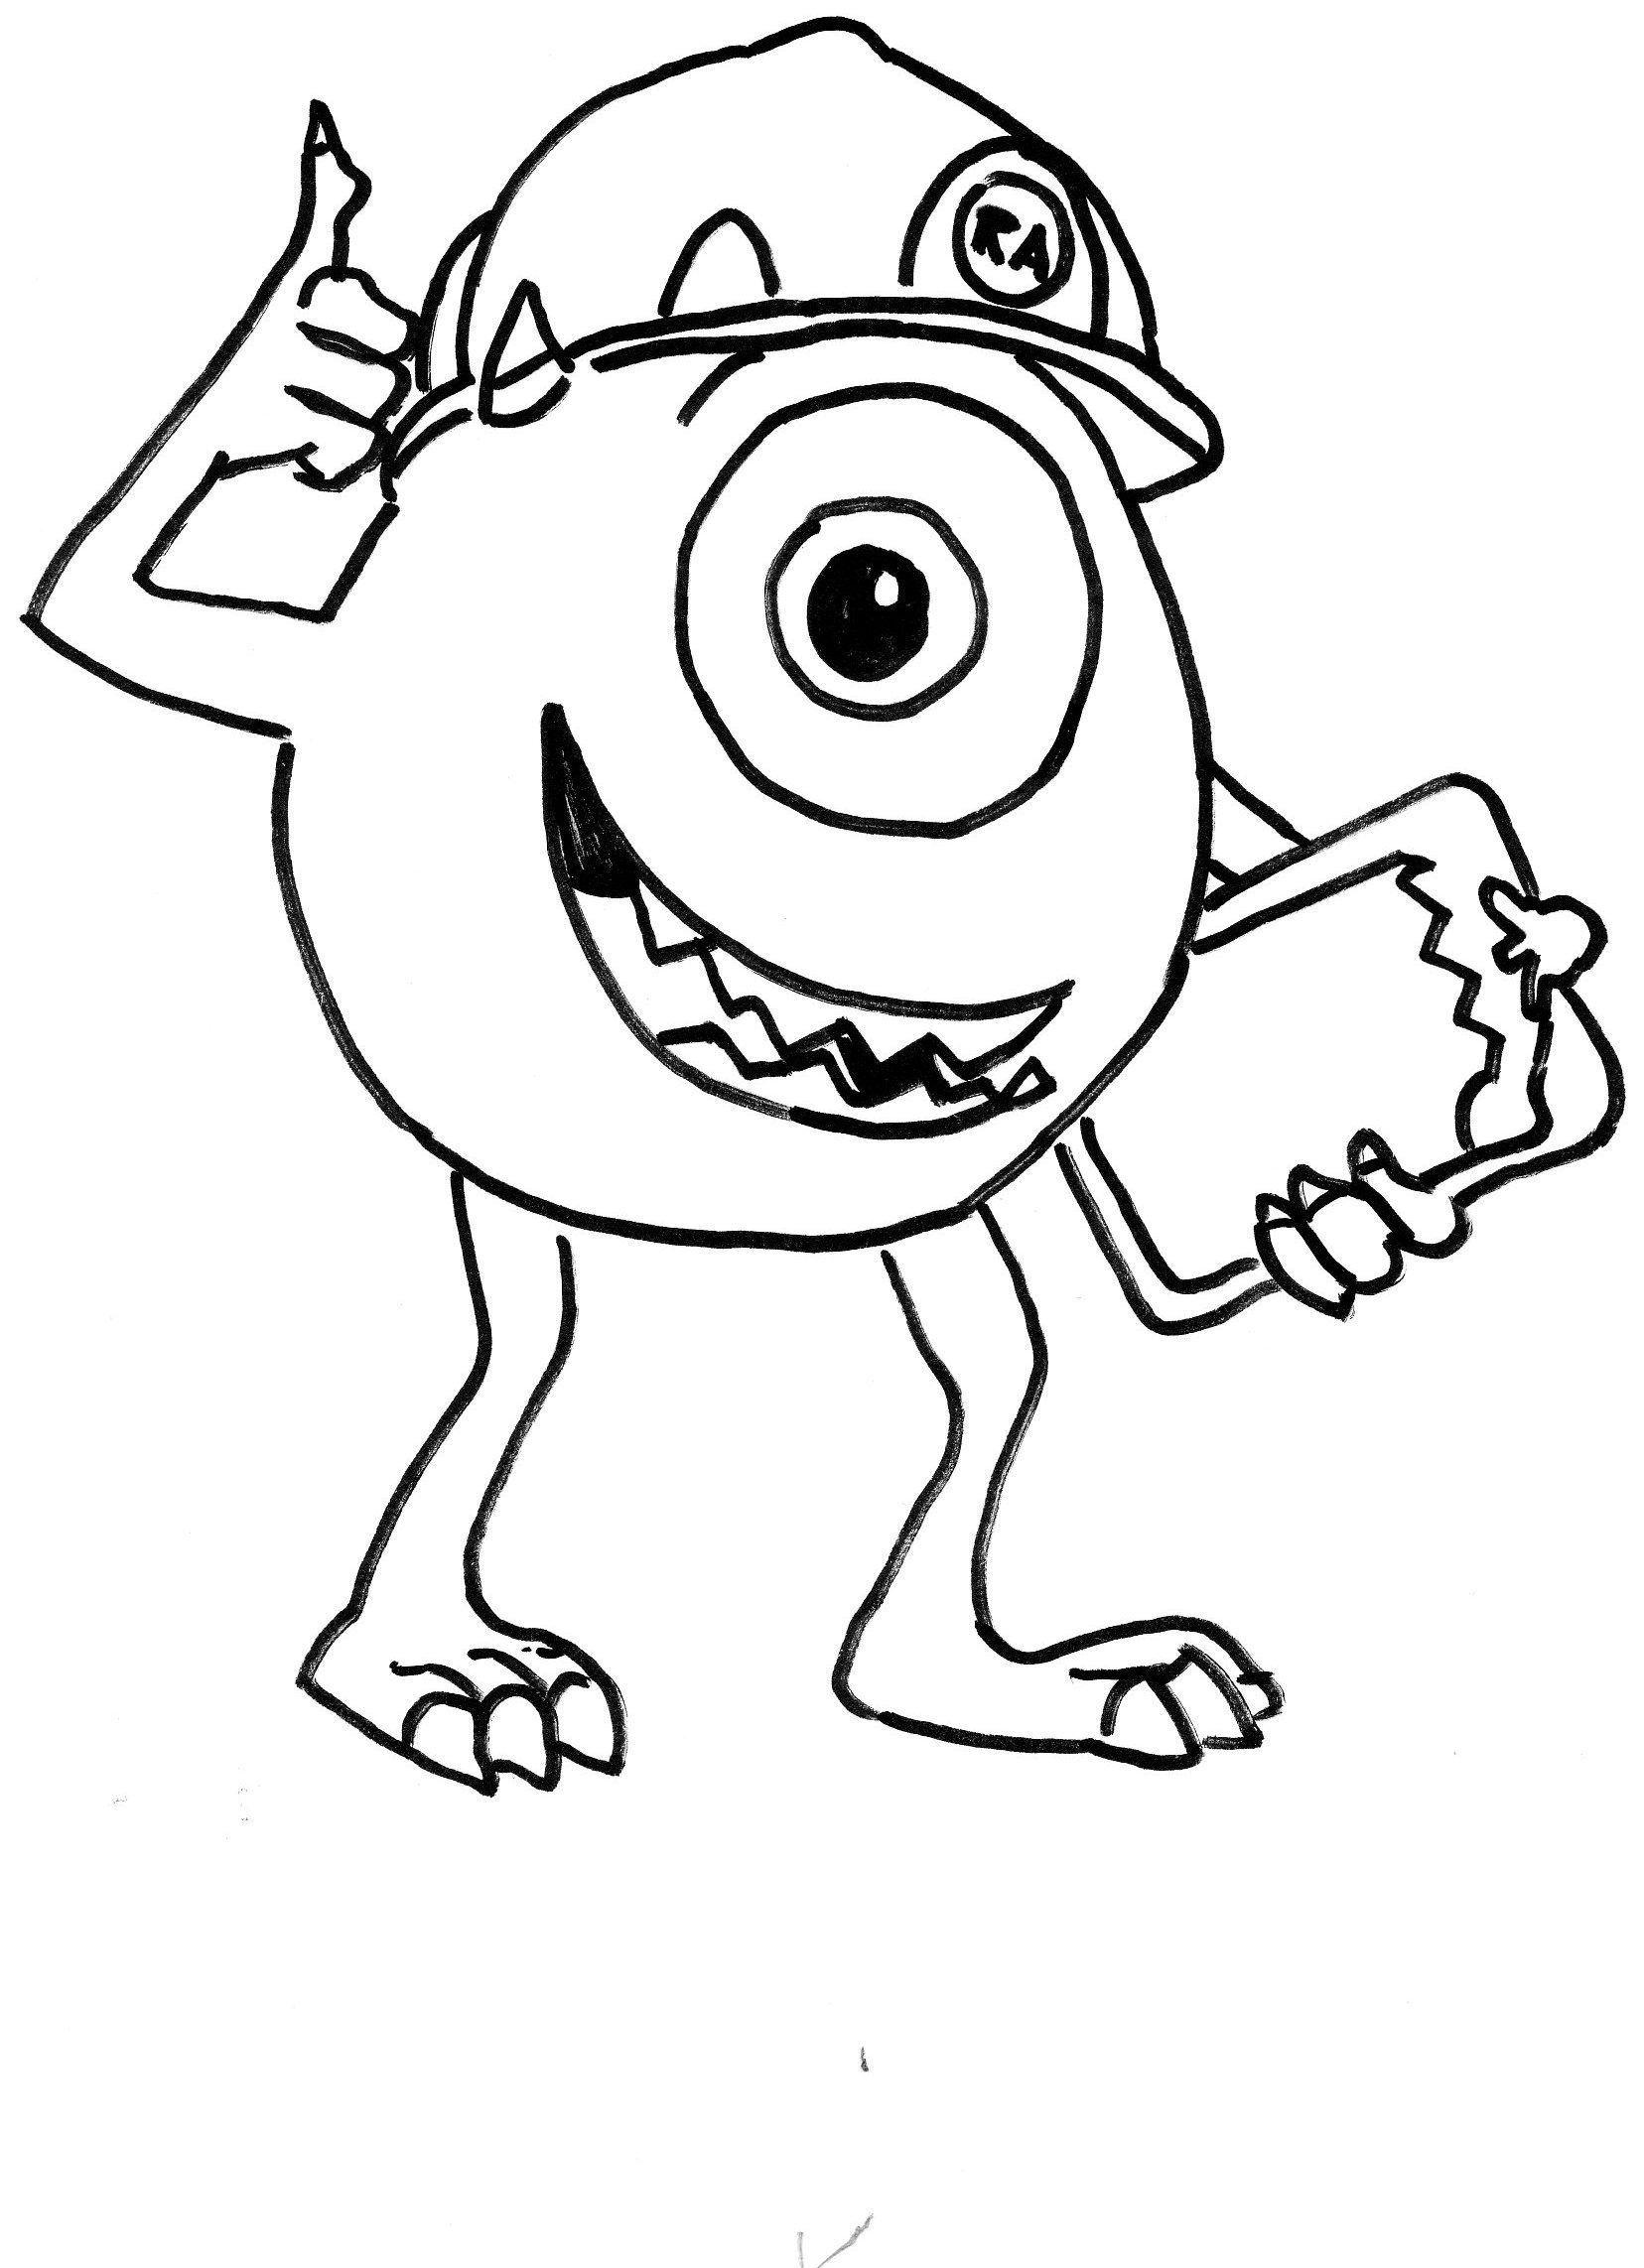 coloring pages for girls to print - Coloring Pages Girls Boys